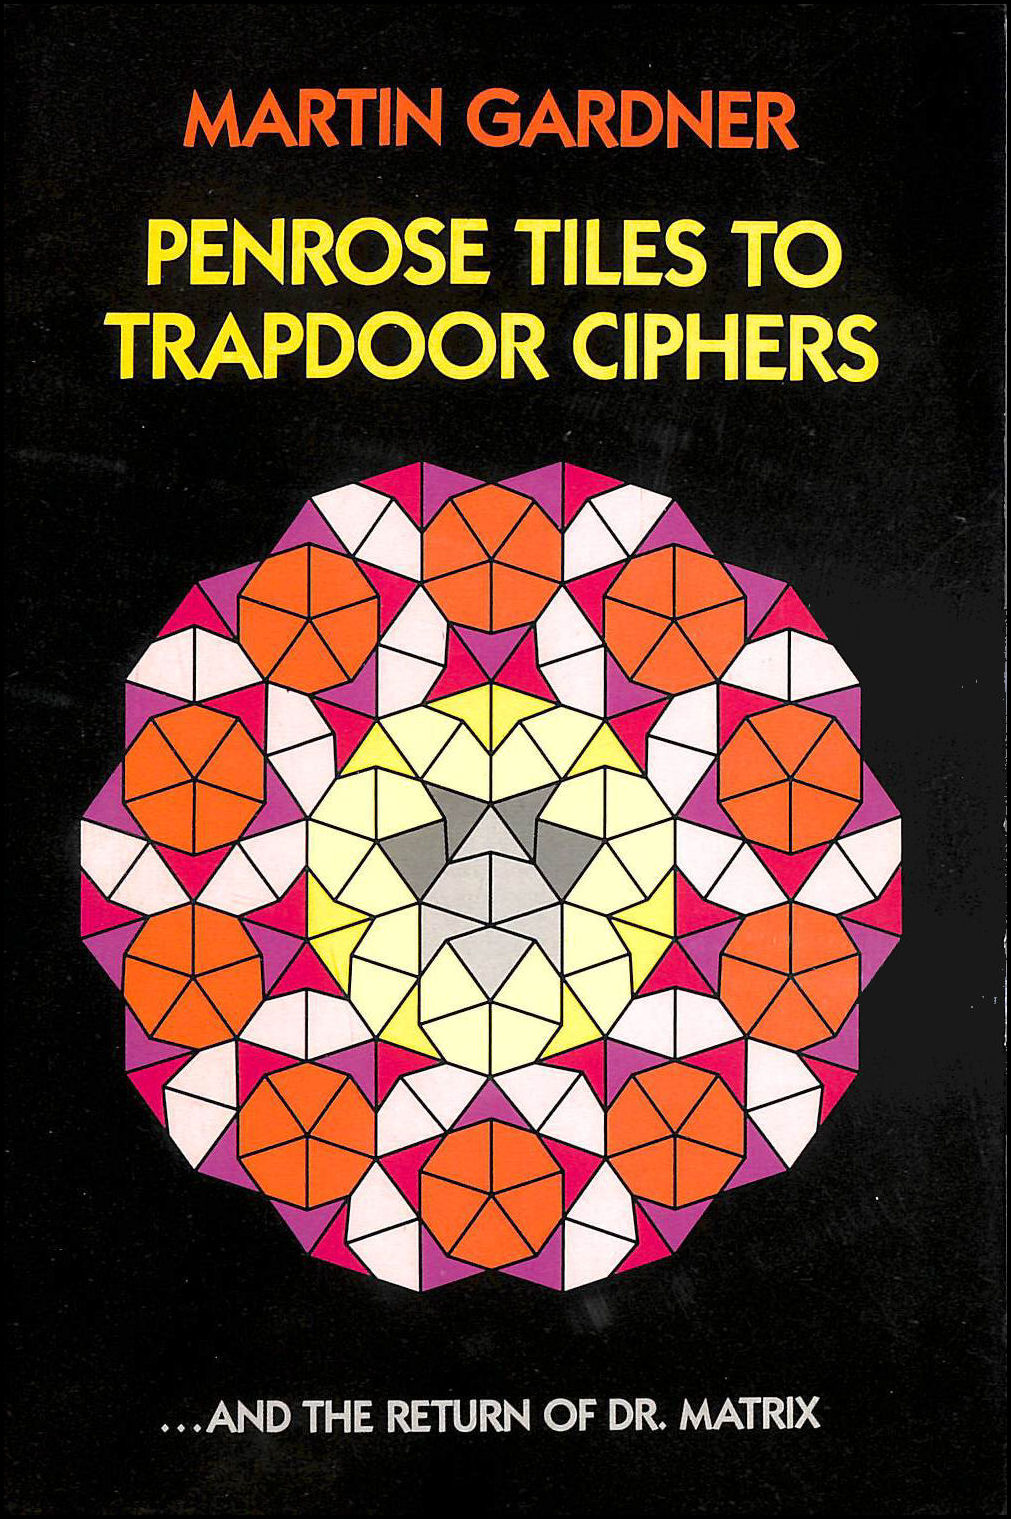 From Penrose Tiles to Trapdoor Ciphers, Gardner, Martin